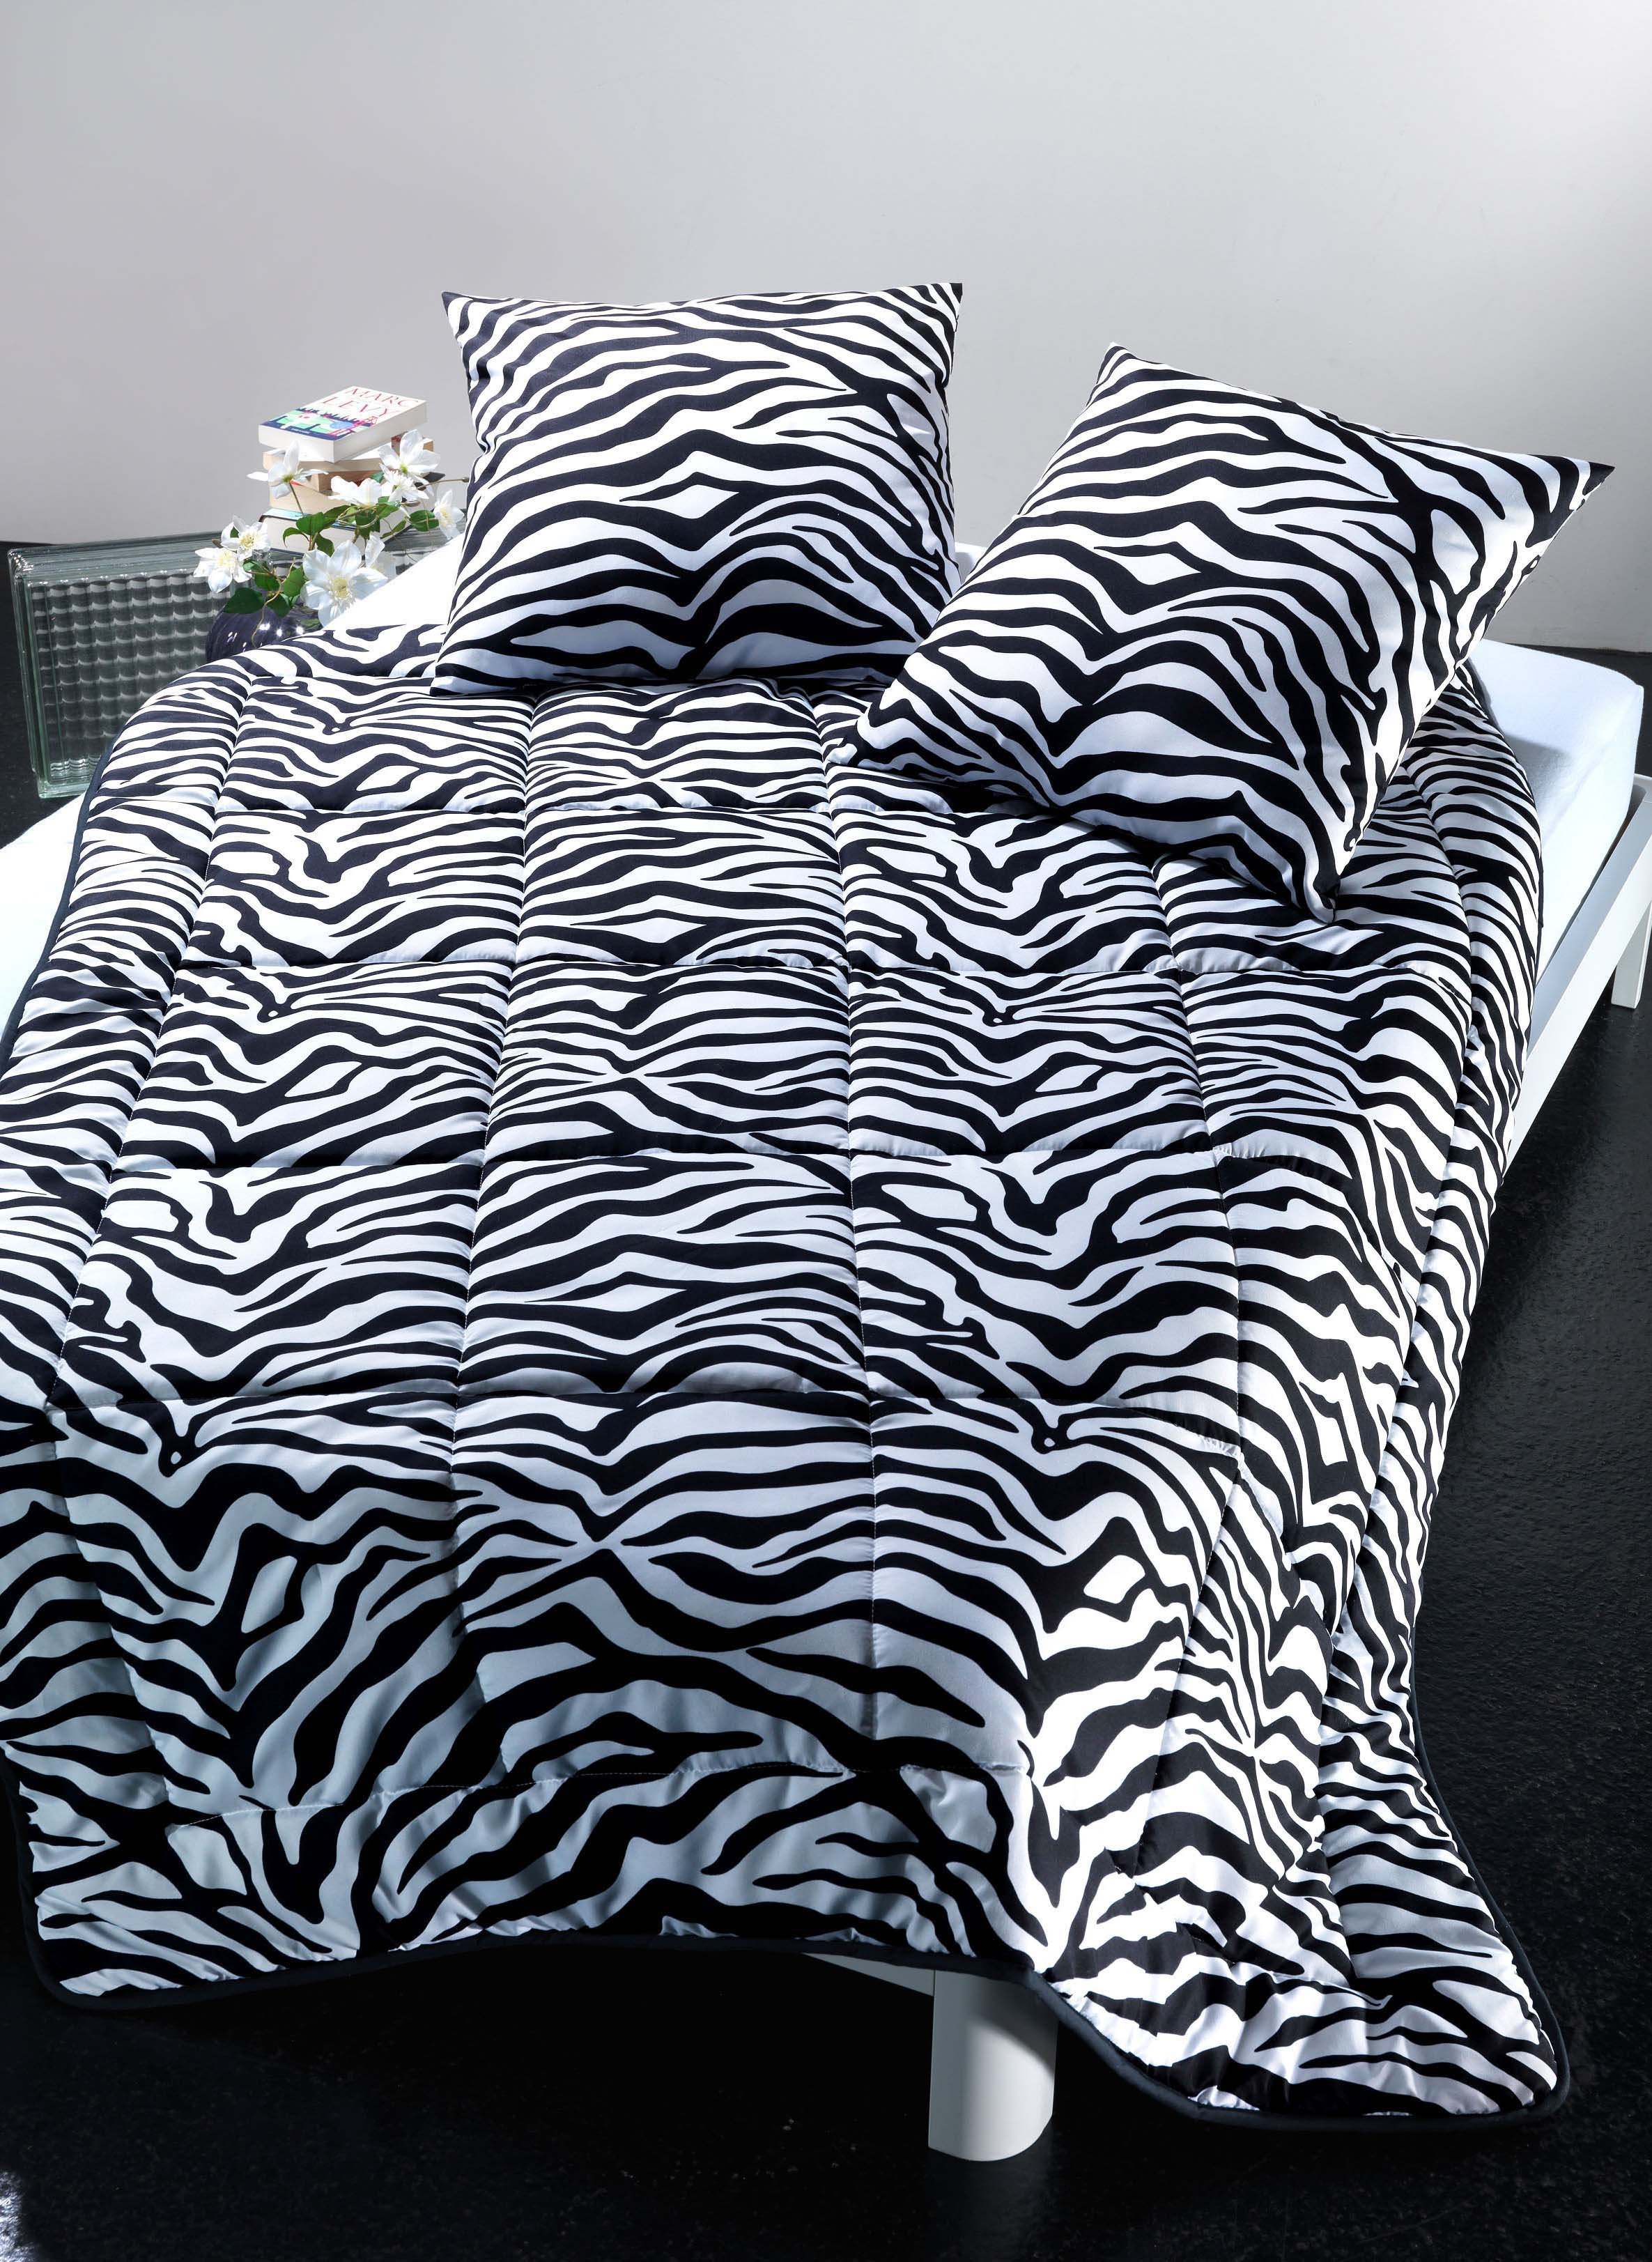 bett berwurf zebra decken berw rfe rund ums bett. Black Bedroom Furniture Sets. Home Design Ideas